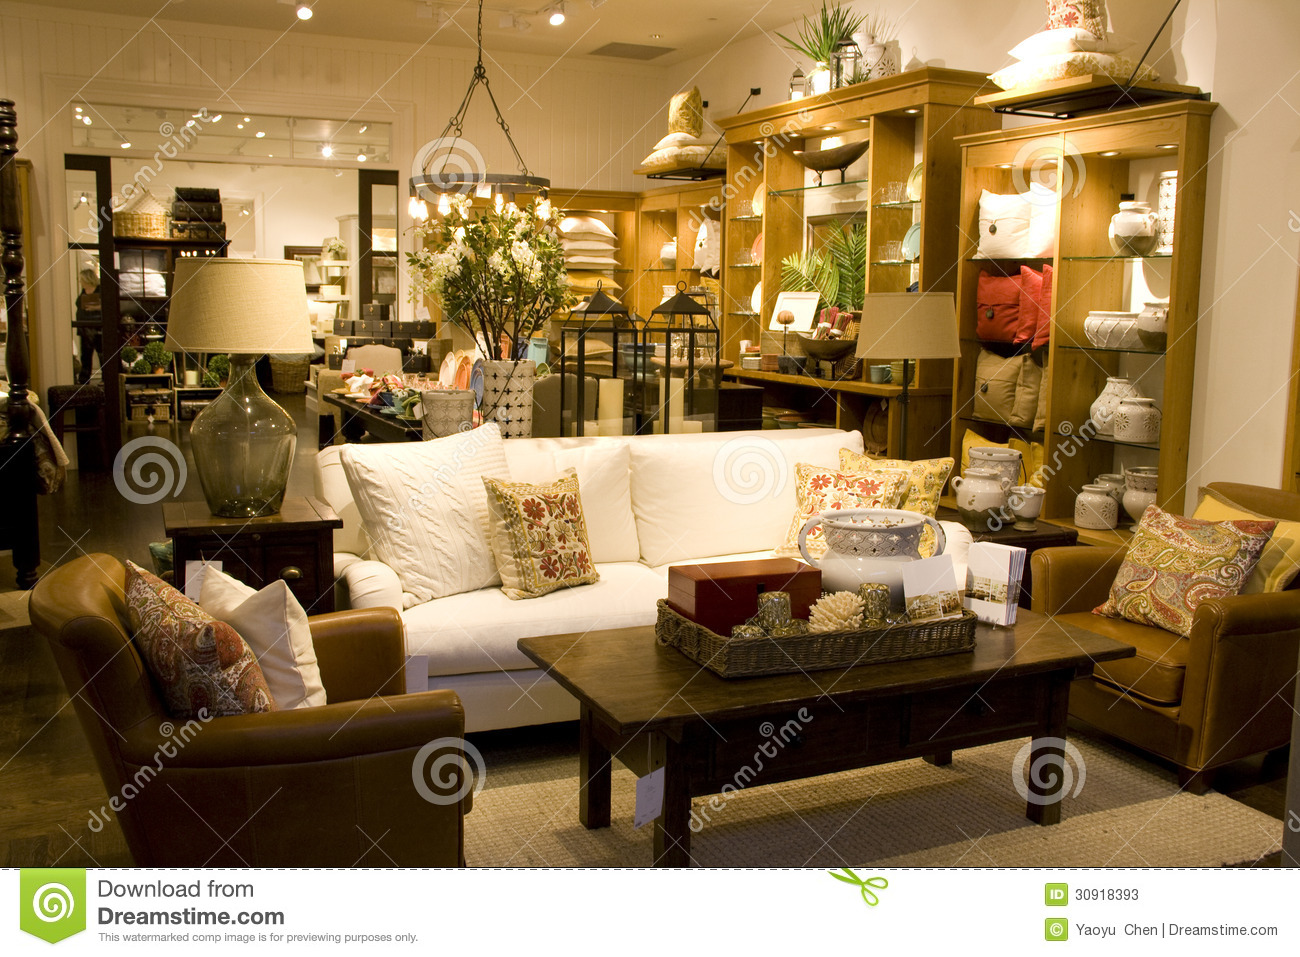 Furniture and home decor store stock image image 30918393 for Home decor retailers